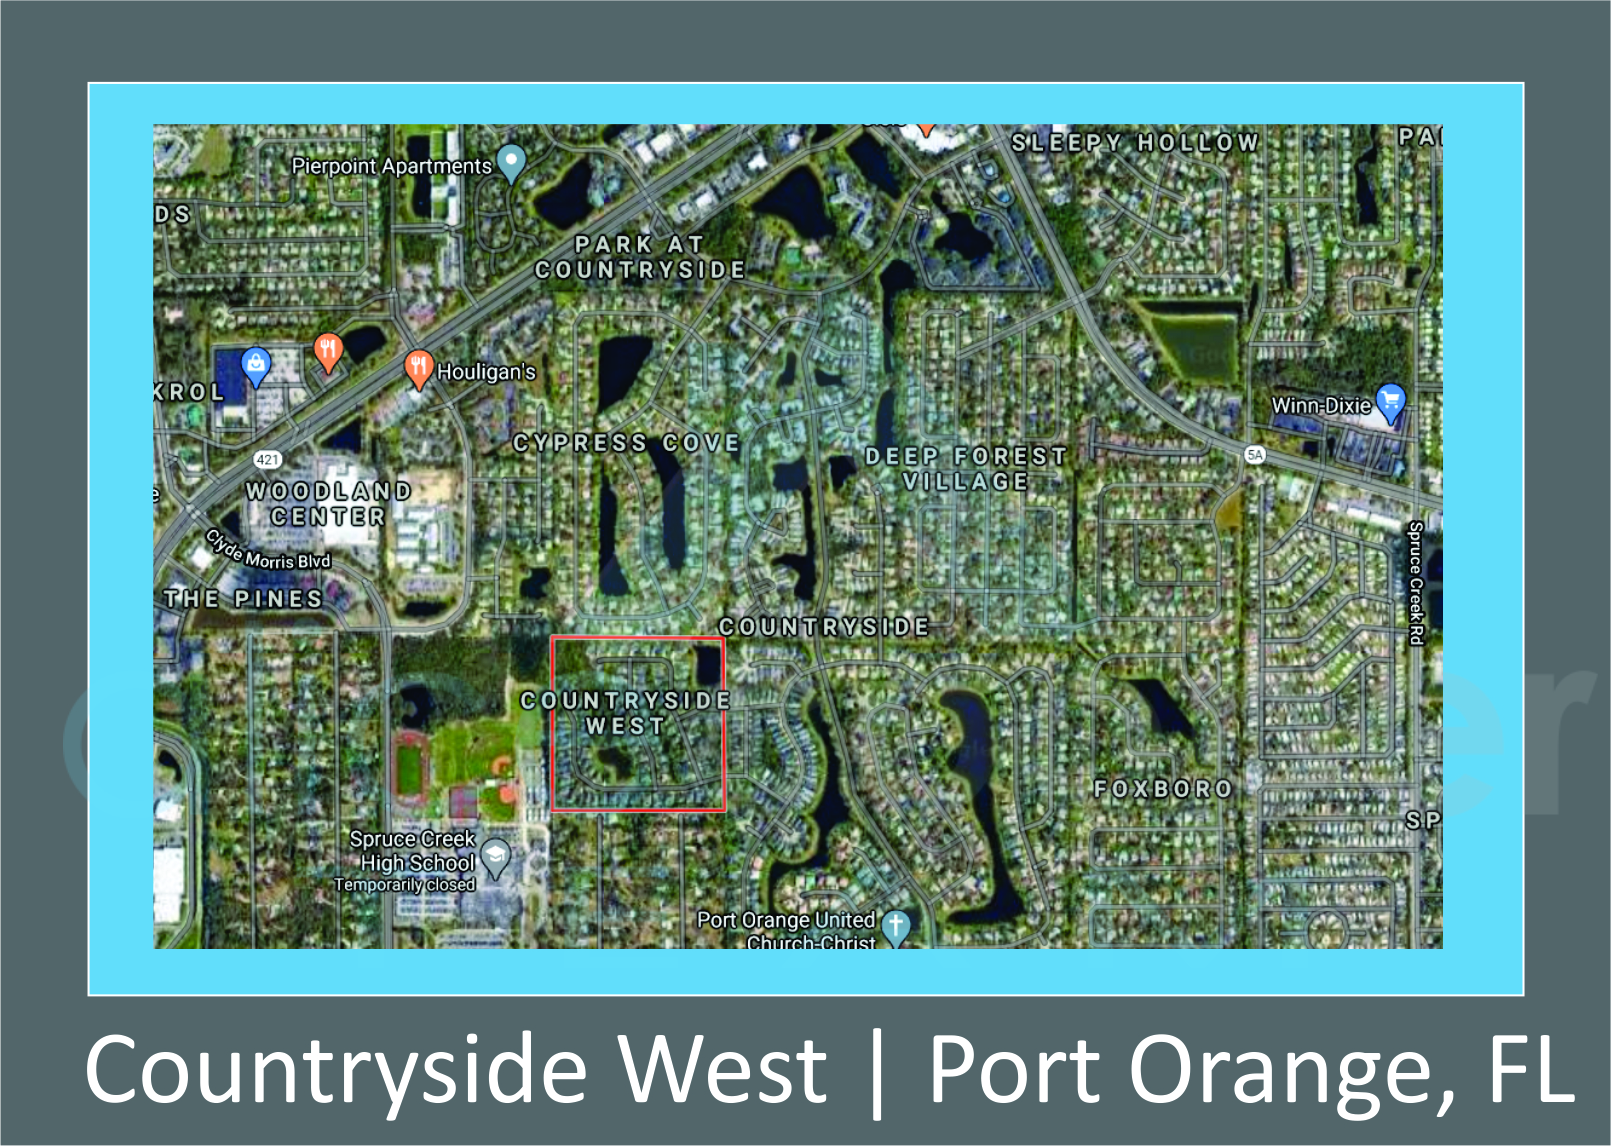 Map of Countryside West Port Orange, FL